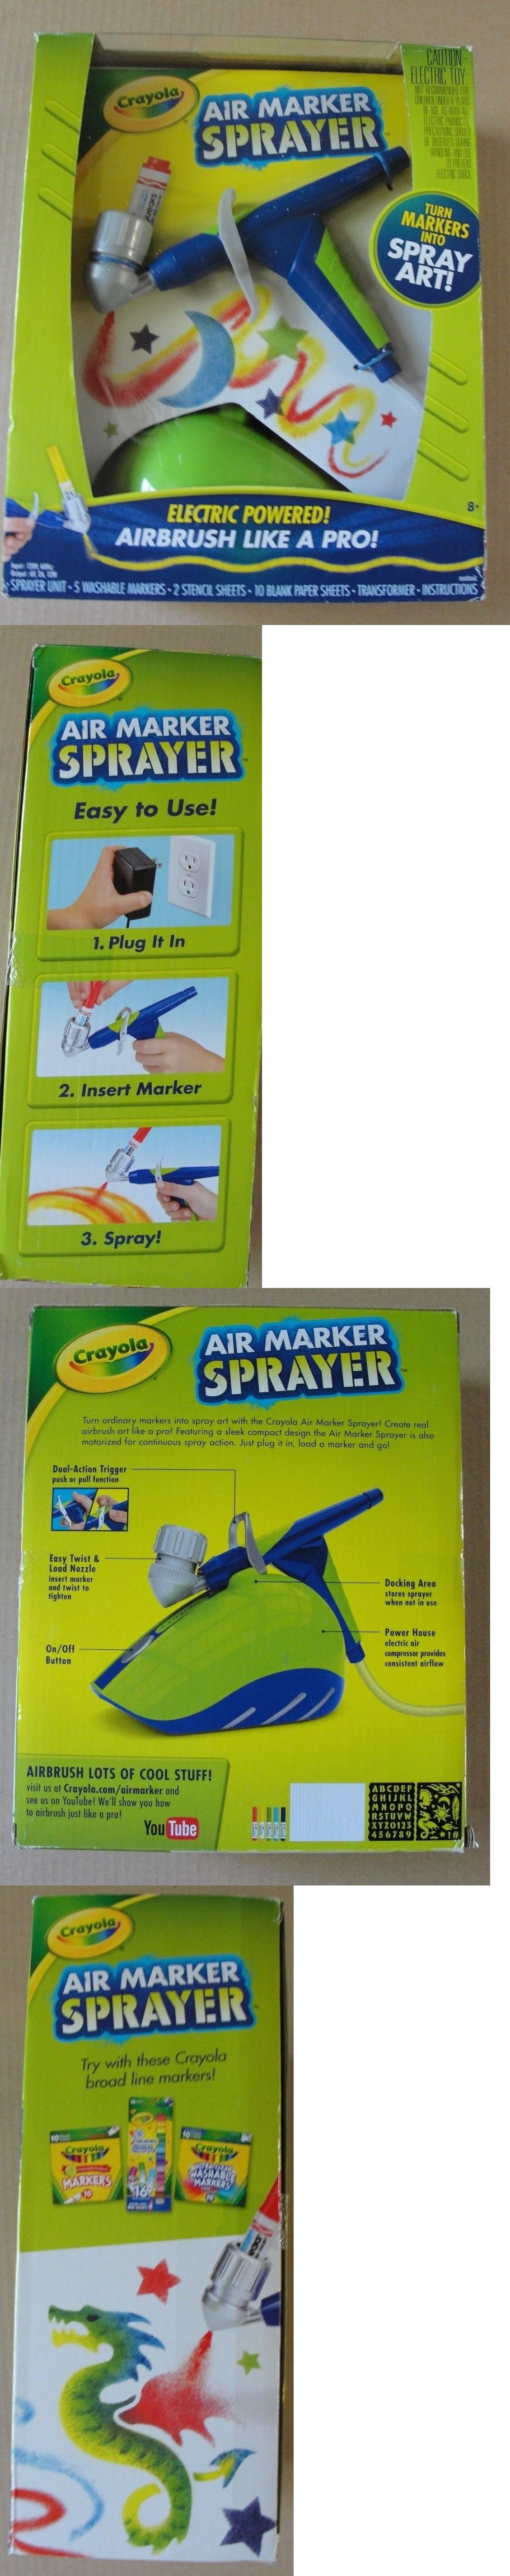 Pens And Markers 116656 Crayola Air Marker Sprayer Electric